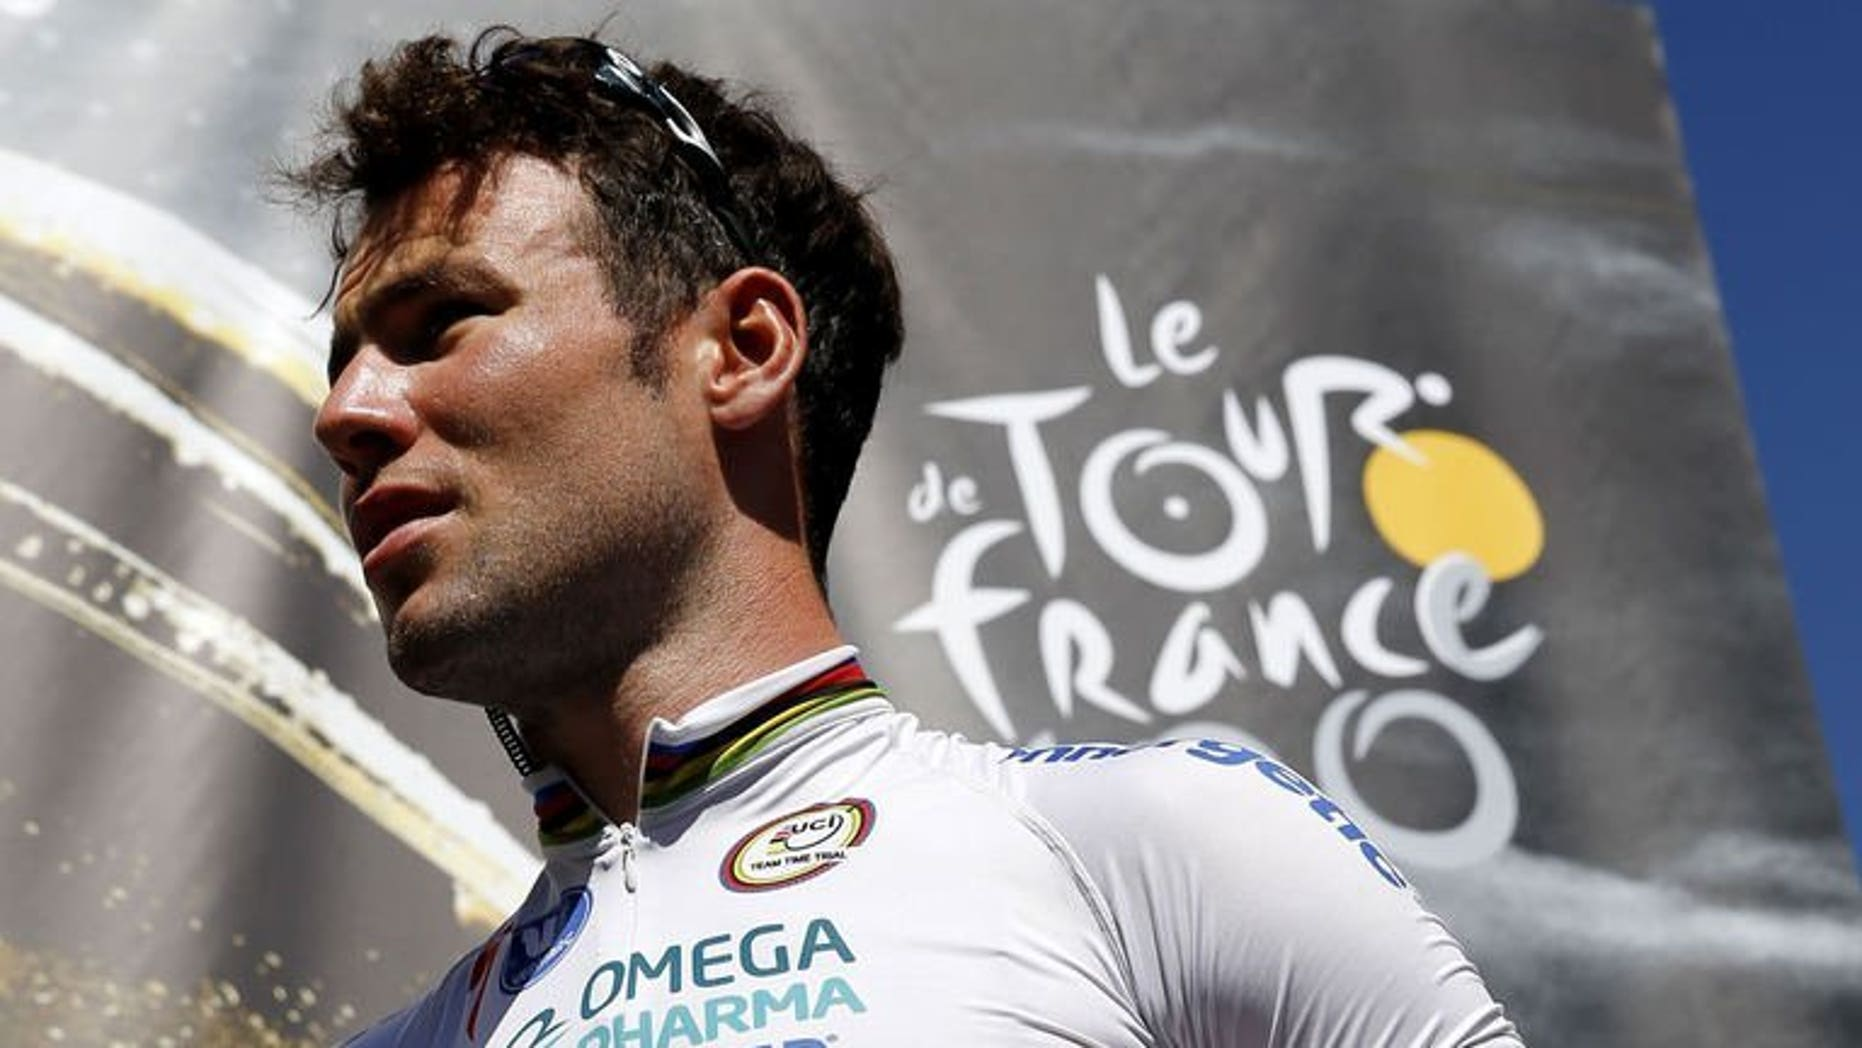 Britain's Mark Cavendish at a ceremony in Castres before the start of the eighth stage of the Tour de France on July 6, 2013 between Castres and Ax 3 Domaines, southwestern France. Cavendish is no longer welcome at the Boxmeer Criterium in the Netherlands, Dutch news agency ANP said on Thursday, reporting that race organisers had withdrawn his name from the list of starters.